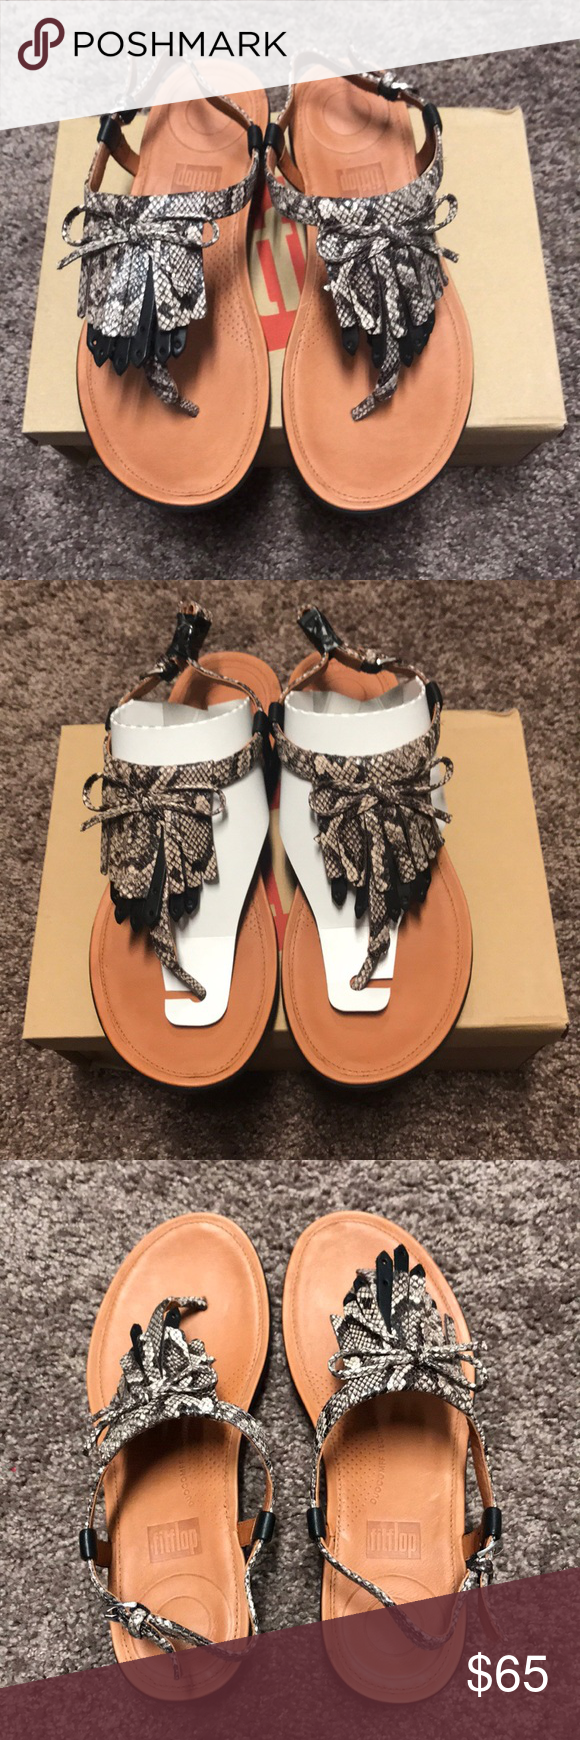 6d1bd55b92a32c NEW Fitflop Women s Tia Fringe Toe-Thong Sandal New with box 🍎Super  comfortable thong